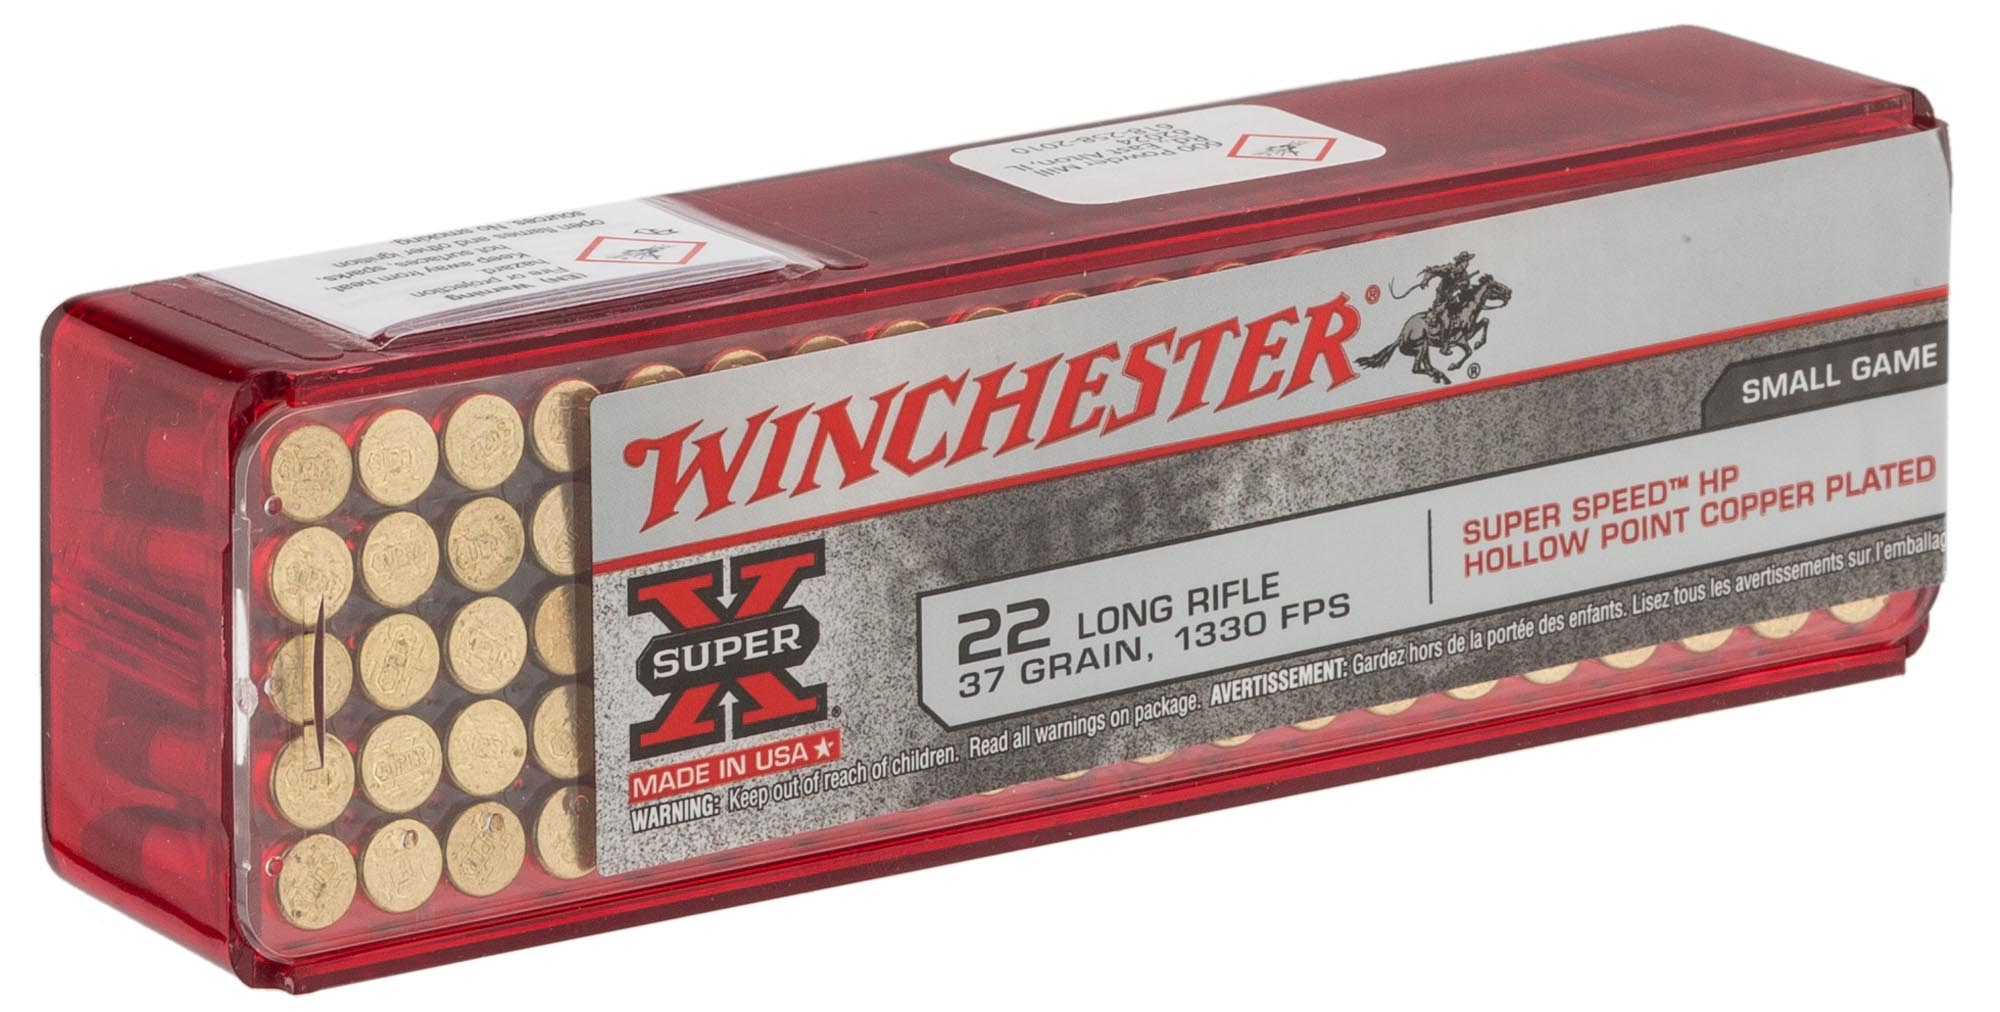 MD313-4-Cartouches 22 LR WINCHESTER SUPER X - MD3130